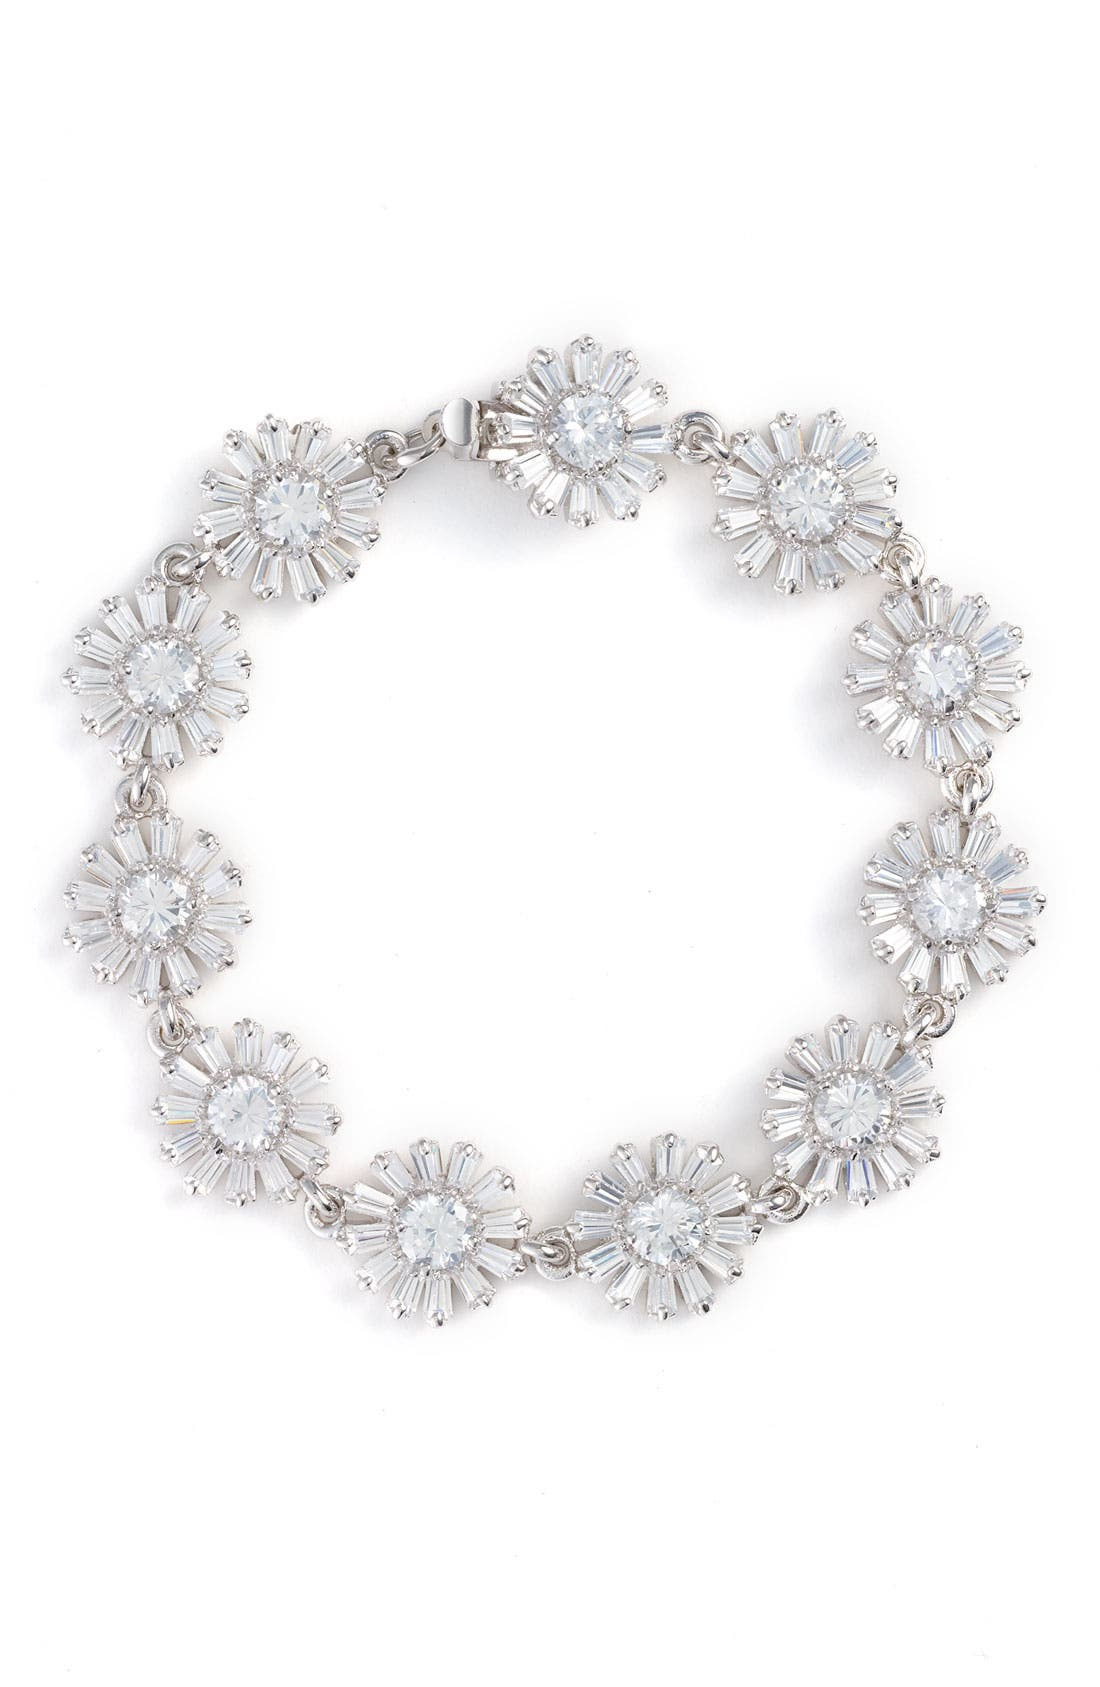 Main Image - kate spade new york 'crystal gardens' line bracelet